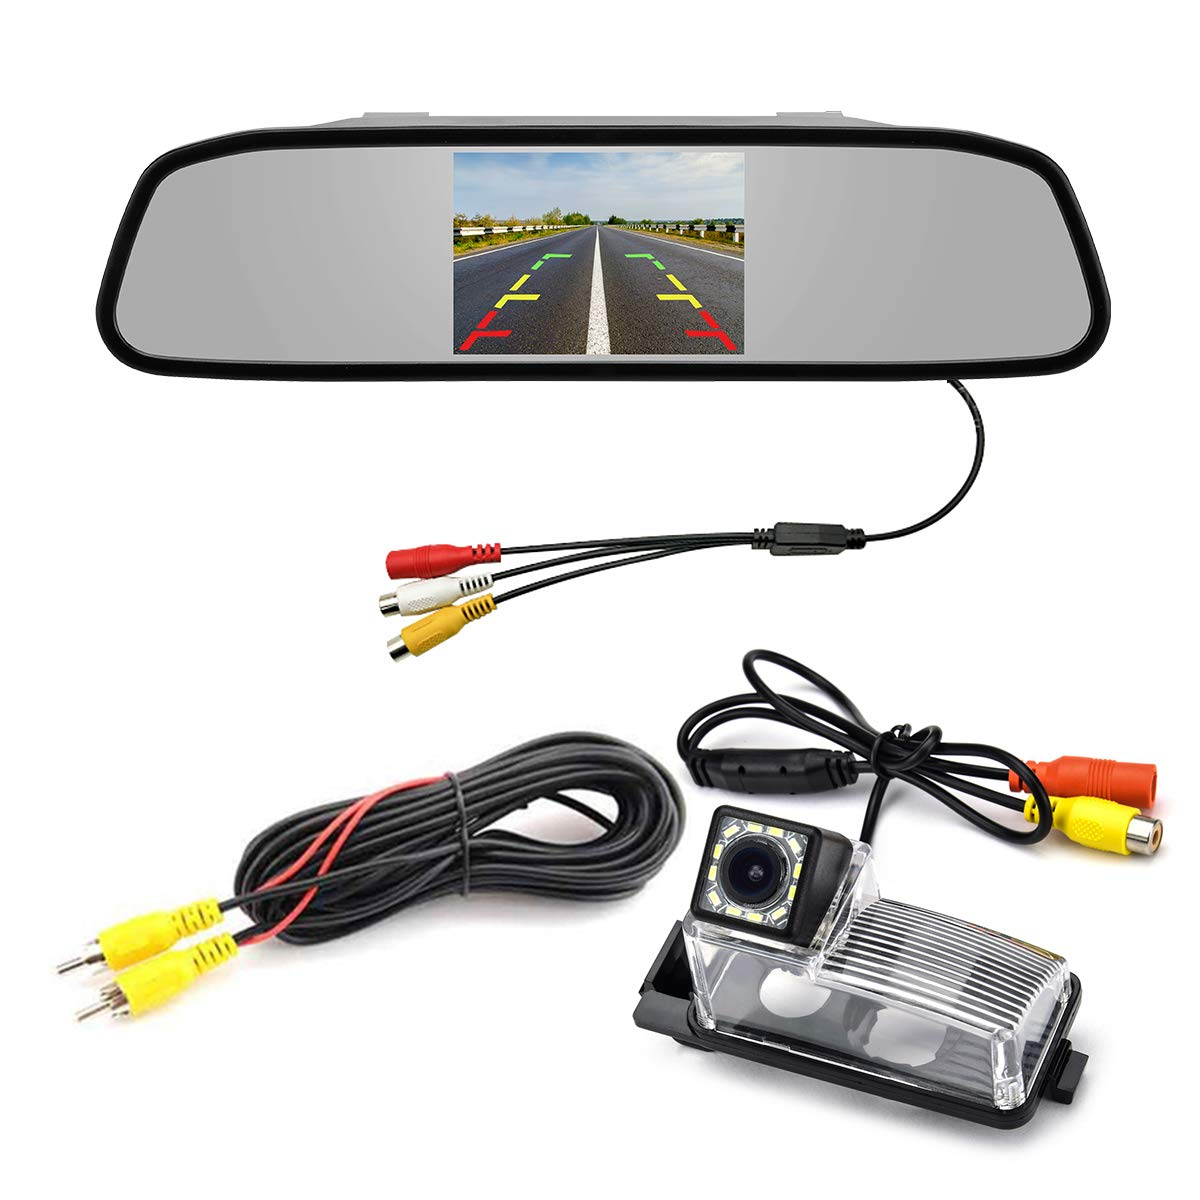 8 LED aSATAH 8 LED Car Rear View Camera for Buick Regal//Excelle XT//Chevrolet Vectra//Holden//Chevrolet Malibu//Vauxhall /&Waterproof and Shockproof Reversing Backup Camera